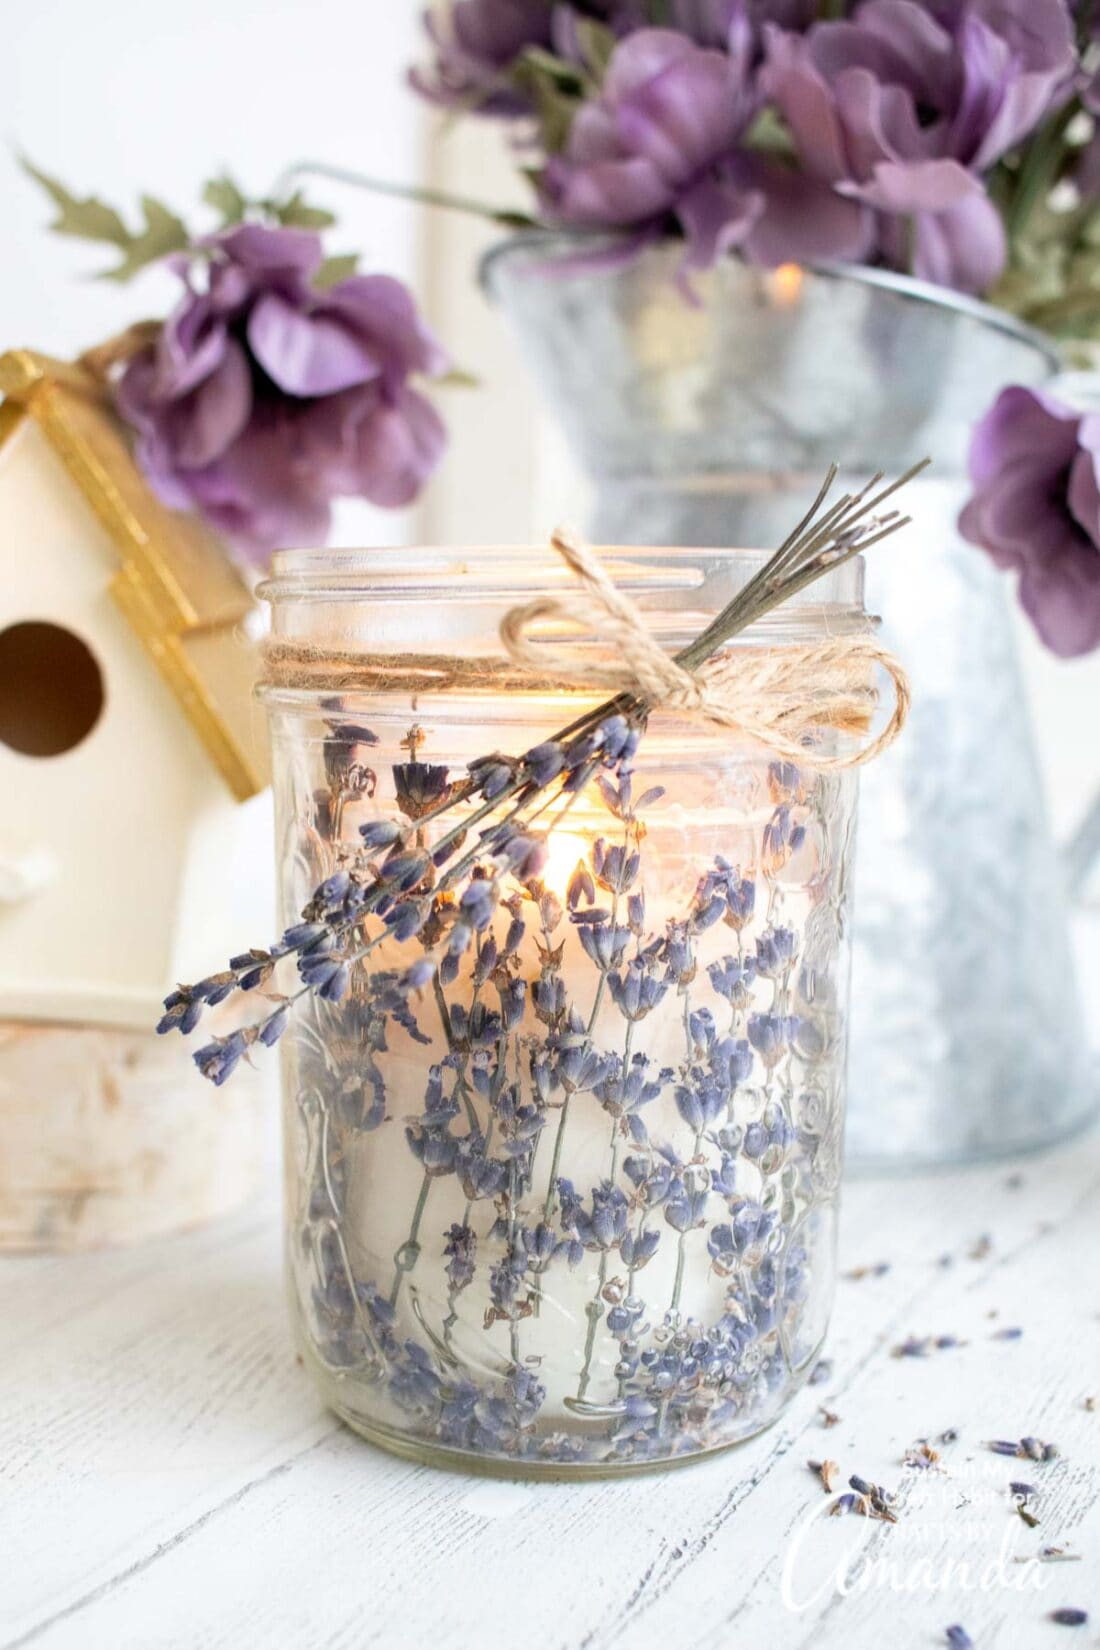 lavender candle in a jar